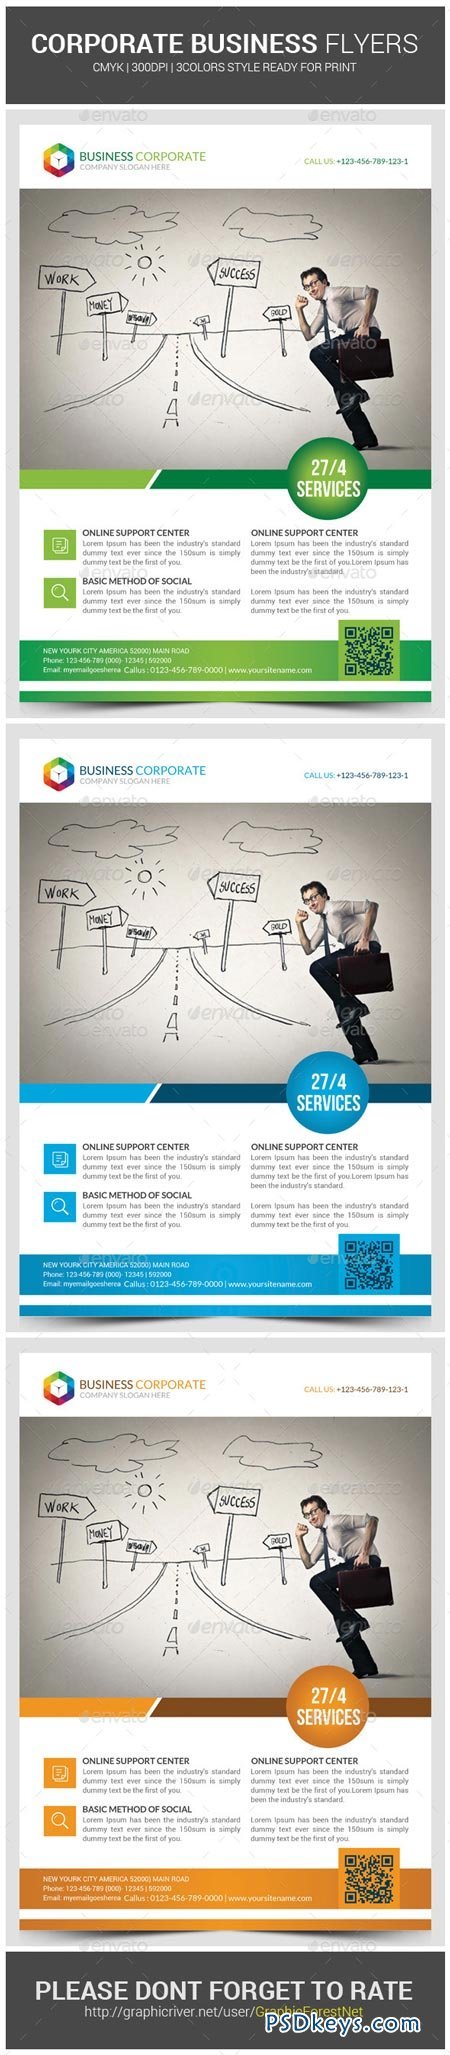 corporate business flyer template 9105768 corporate business flyer template 9105768